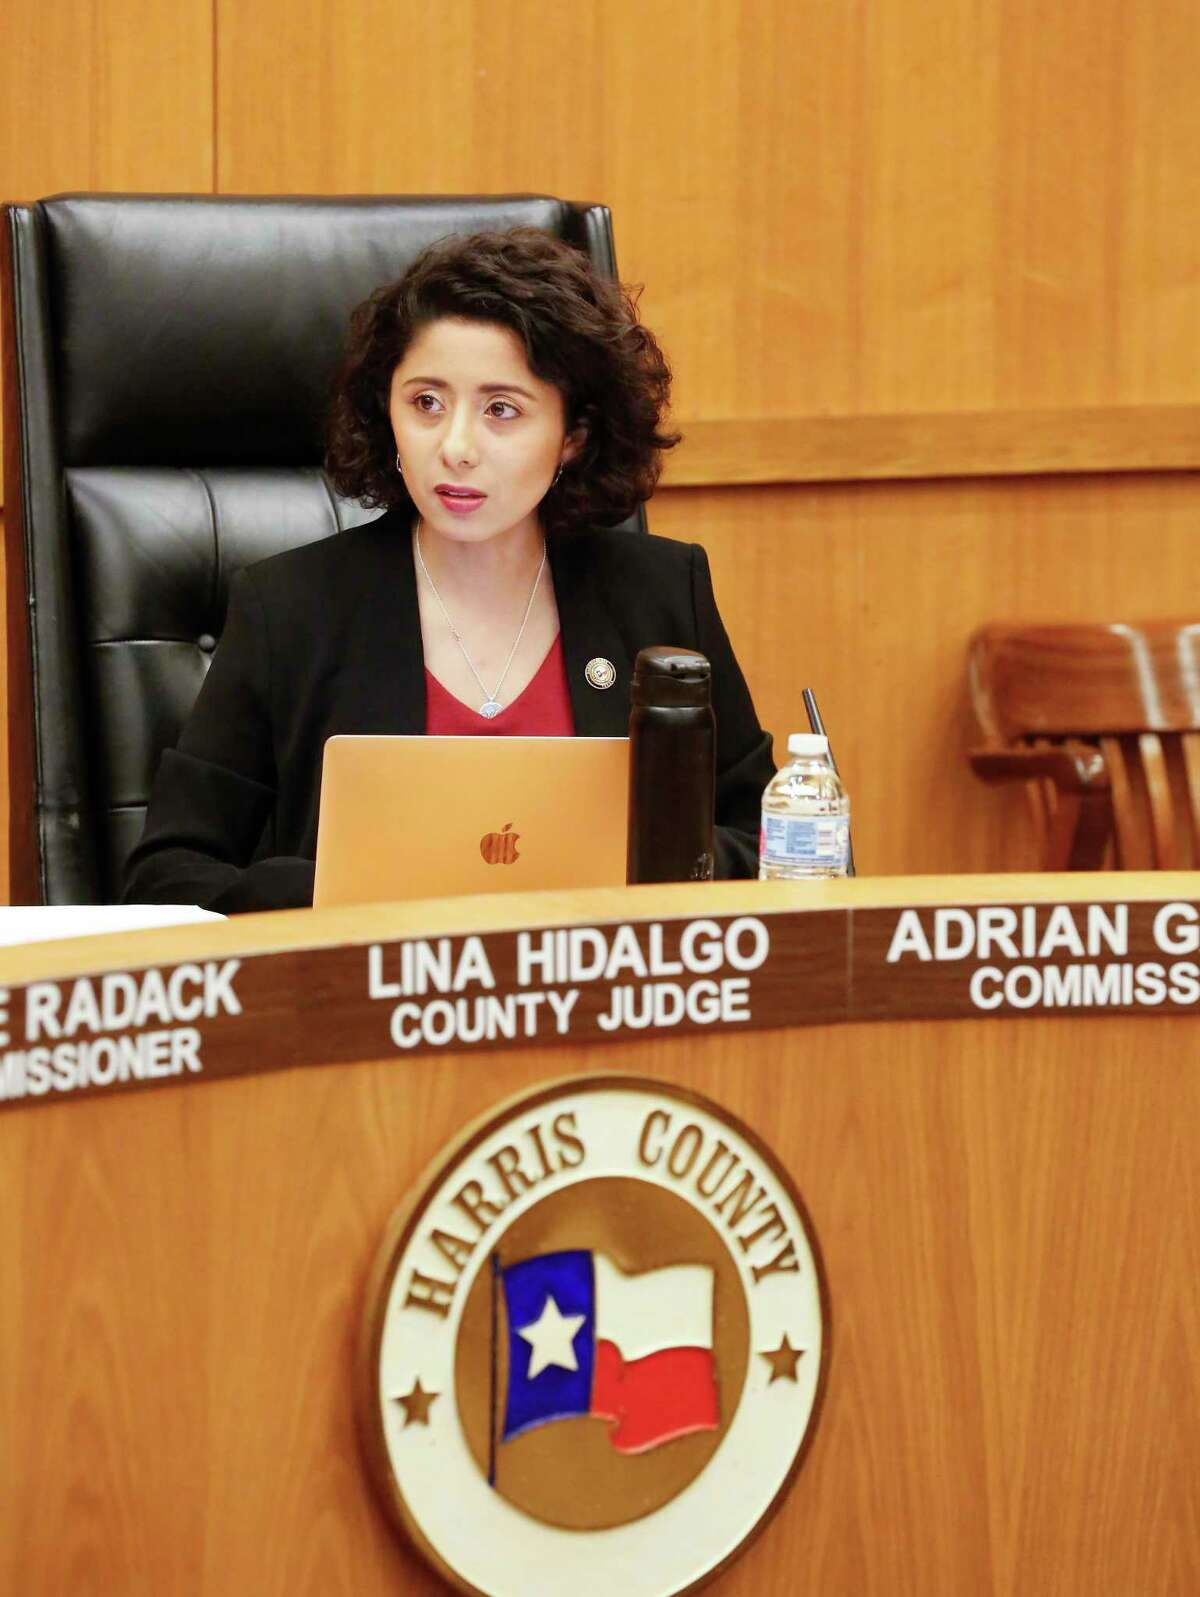 Harris County Judge Lina Hidalgo leads a emergency meeting due to the Coronavirus (COVID-19) outbreak Tuesday, March 17, 2020, in Houston. Only 10 people were allowed in the Harris County Commissioner Court.